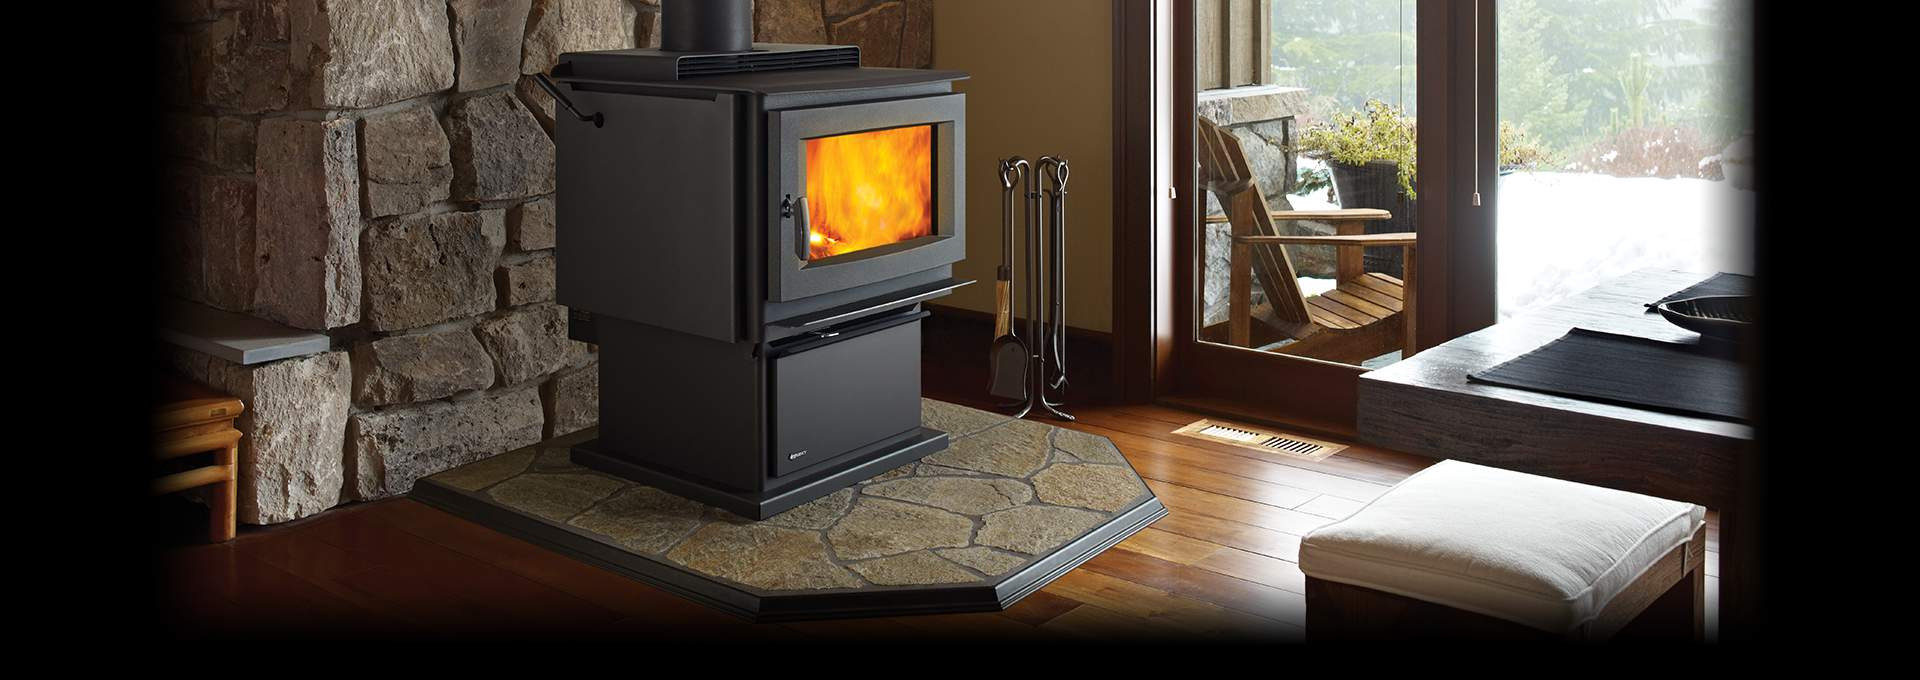 hardwood floors around brick fireplace hearths of wood burning stoves regency fireplace products inside regency pro series feature video